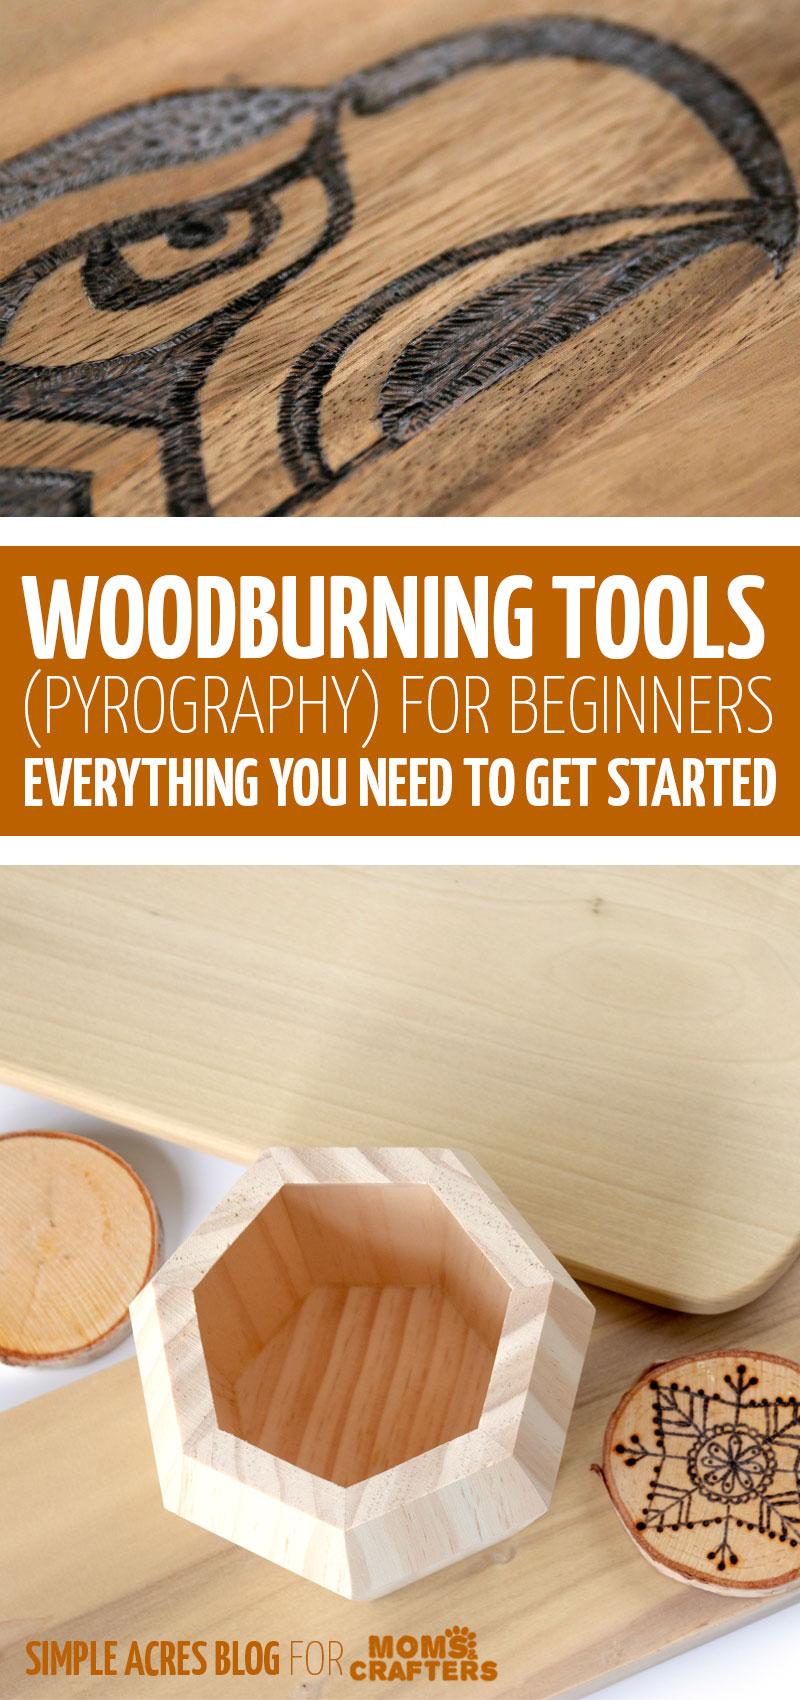 If you want to get started with wood burning, check out this list of top pyrography tools for beginners! This how to get started with woodburning tutorial is great for beginners.